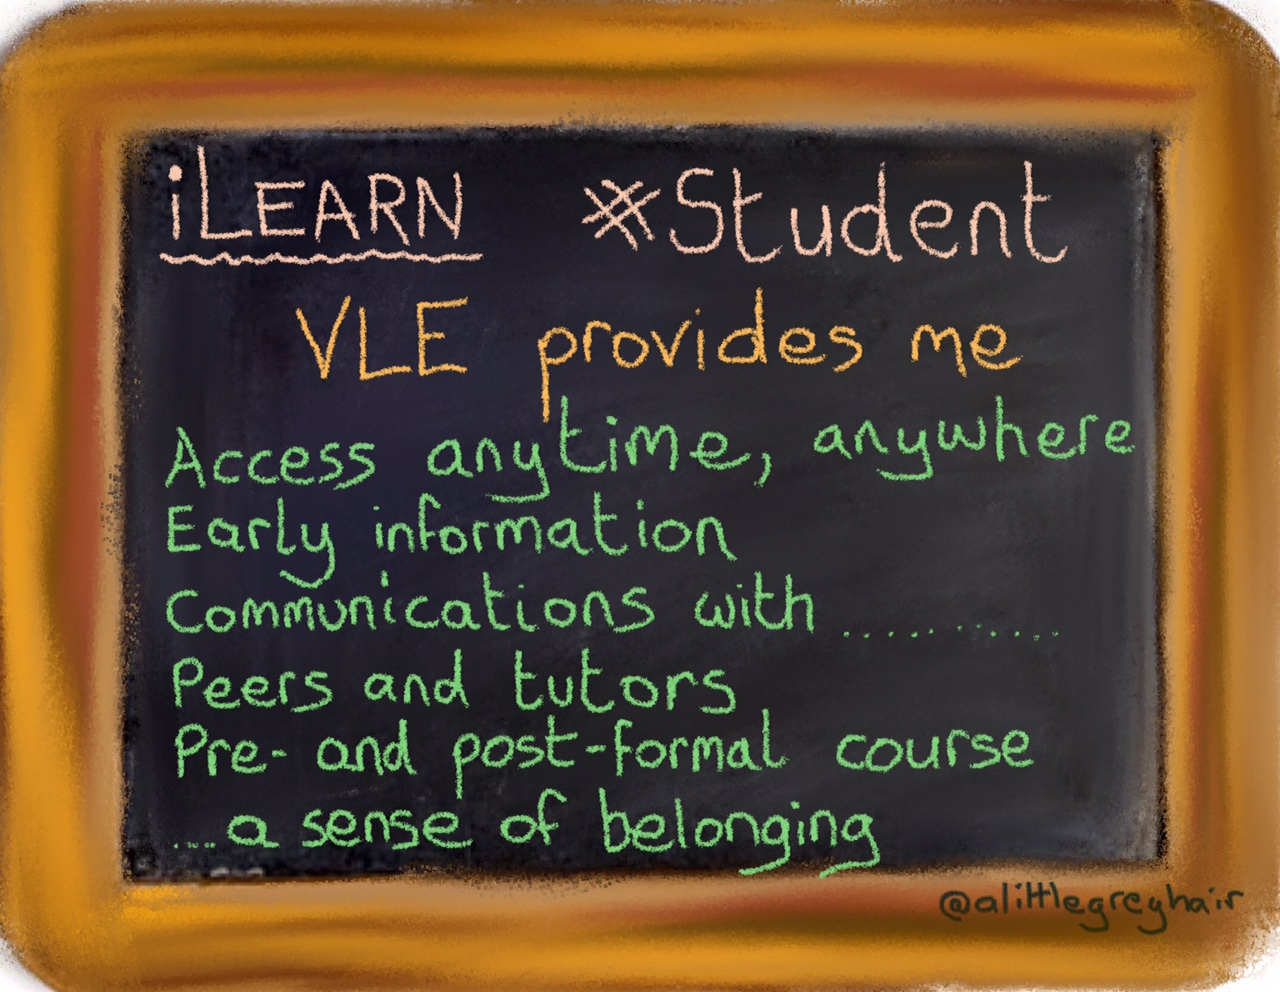 in exchange for all this wisdom learner benefits of a vle